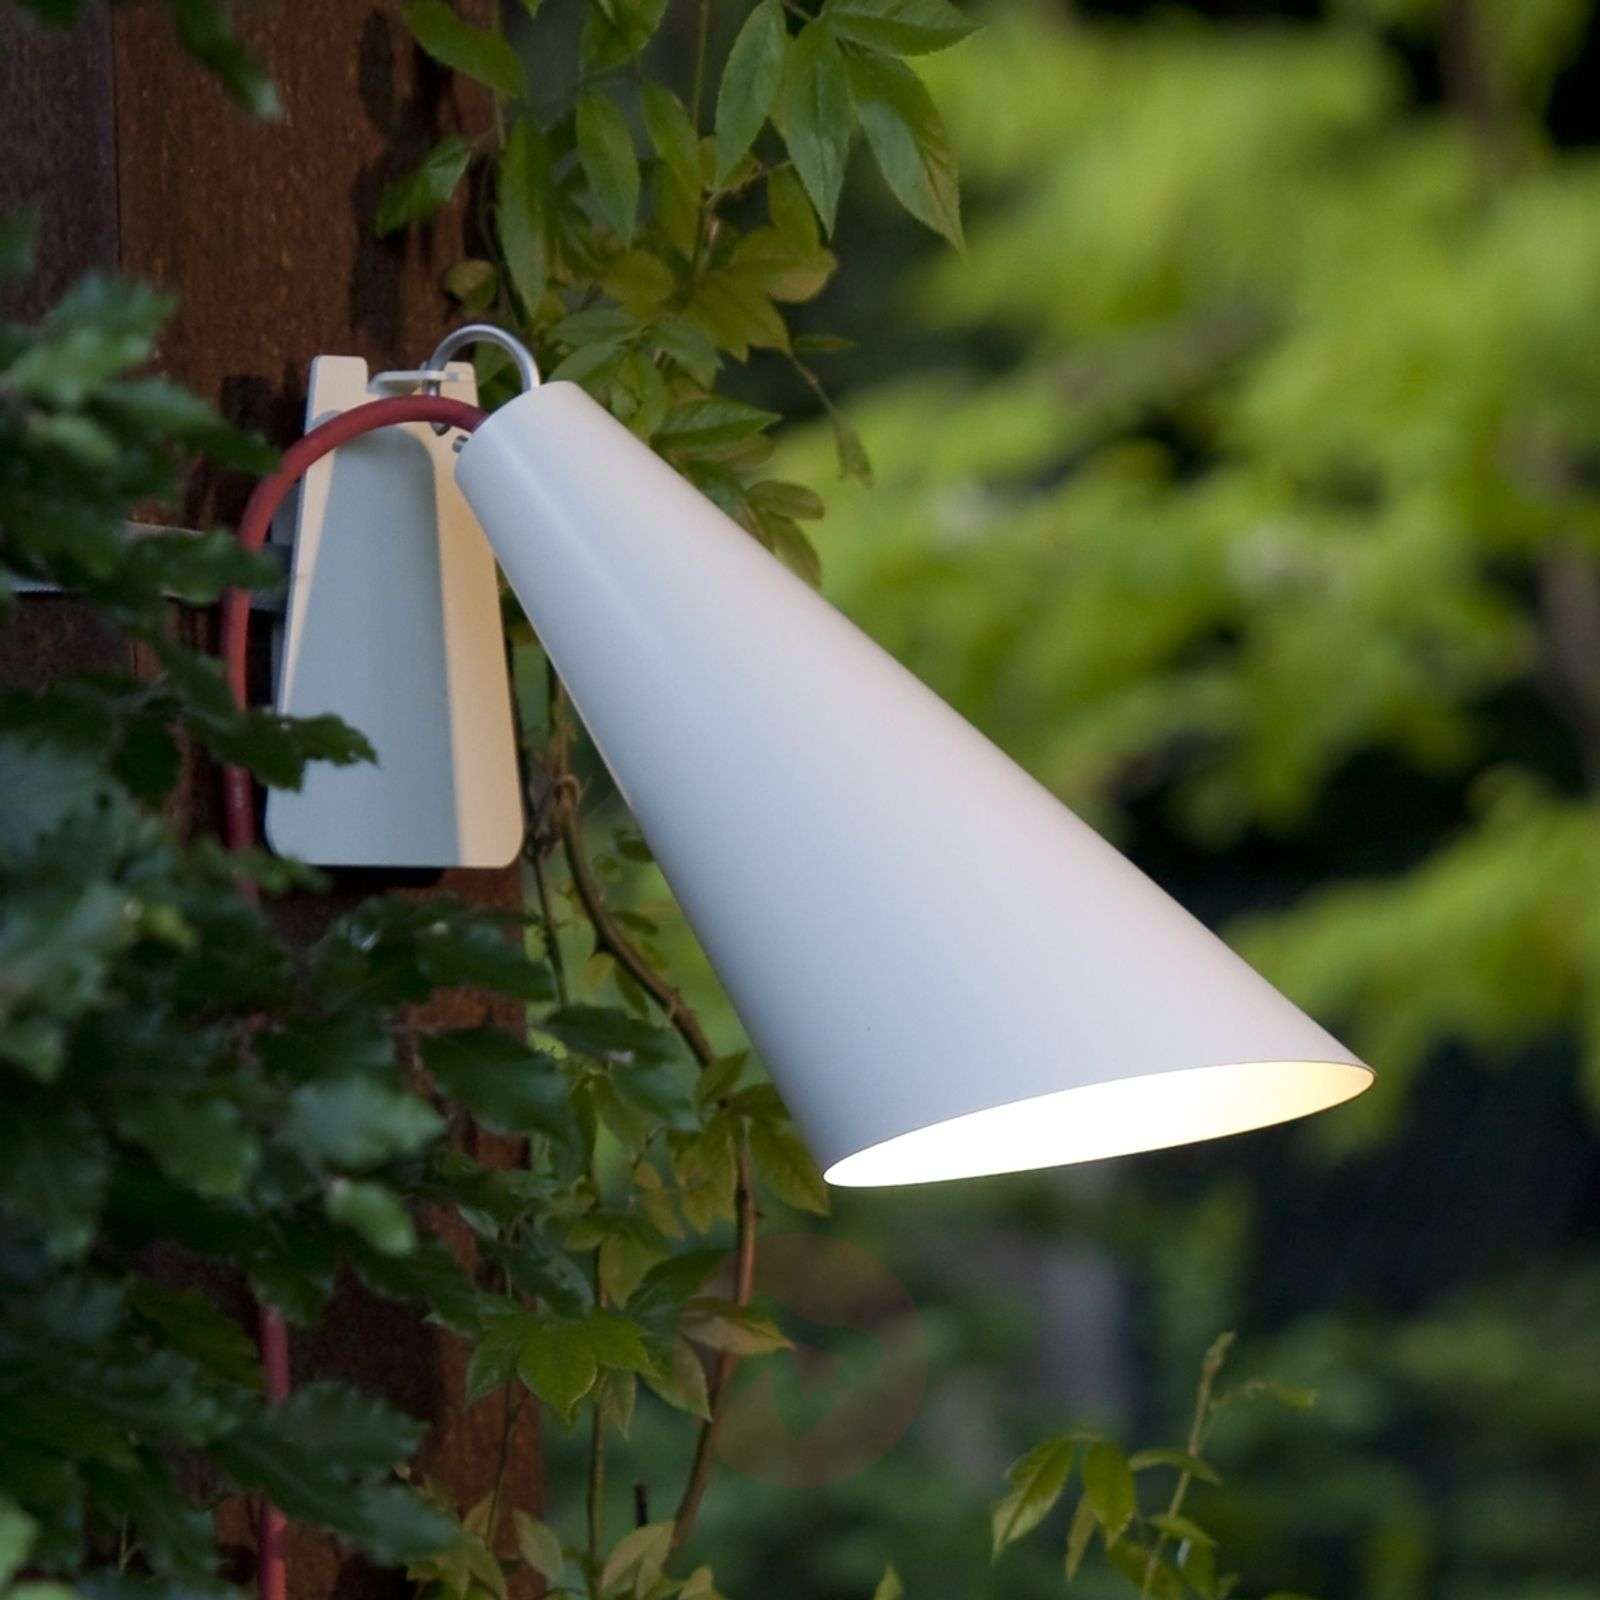 Originele buitenlamp Pit Out met band, wit-2600480-01